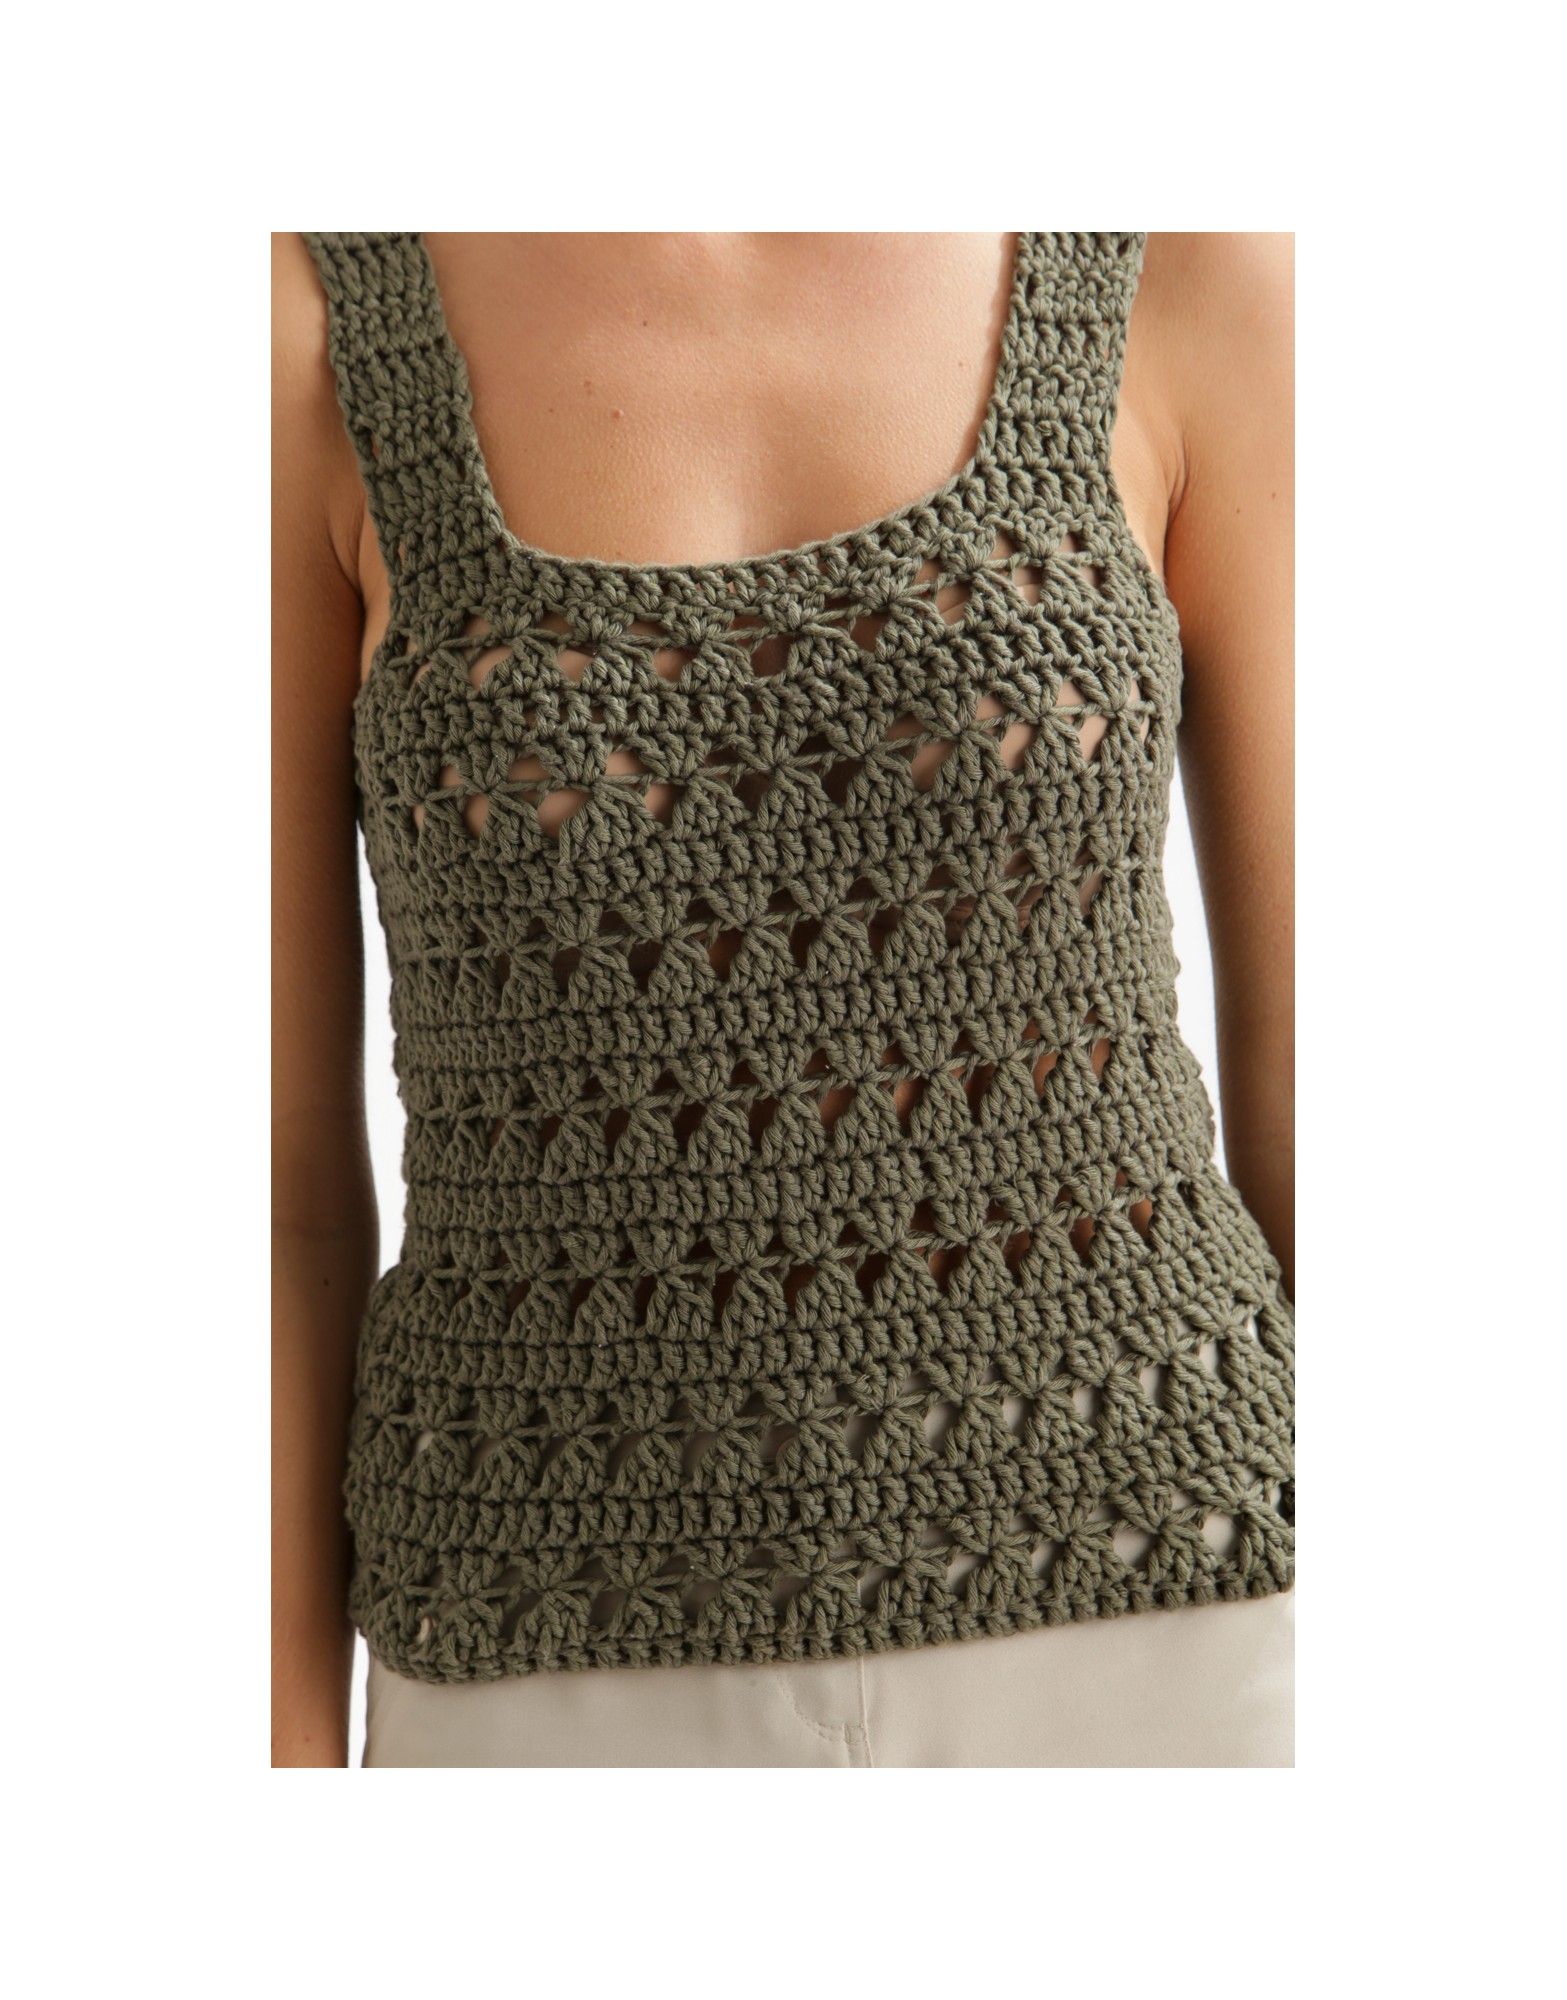 Cute Tank Top Free Crochet Pattern Crochet Kingdom